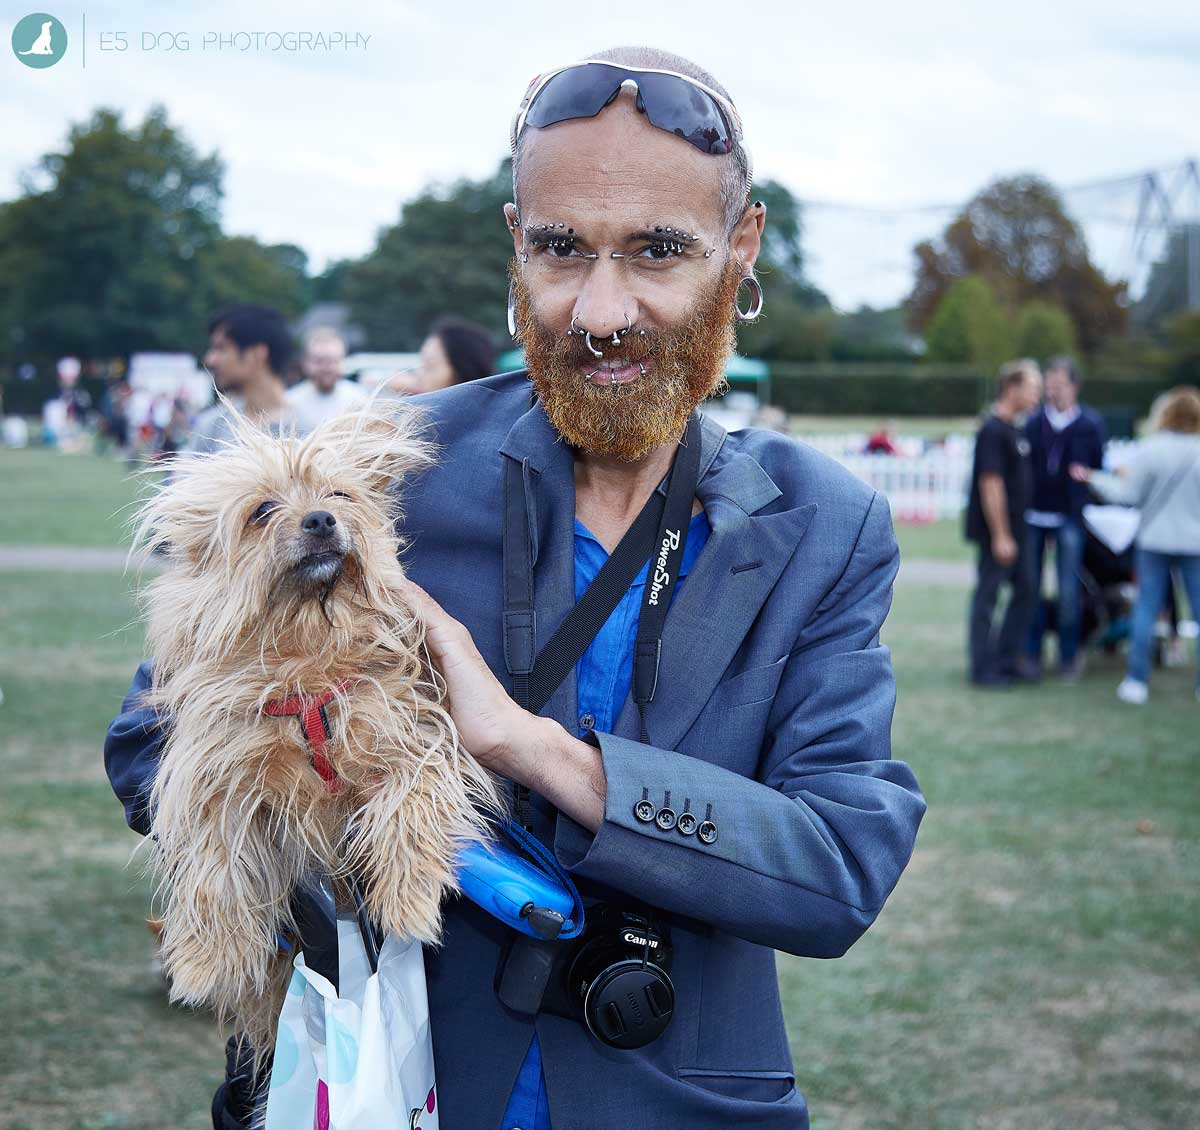 E5_Dog_Photography_PupAid_Primrose_Hill_2016_062